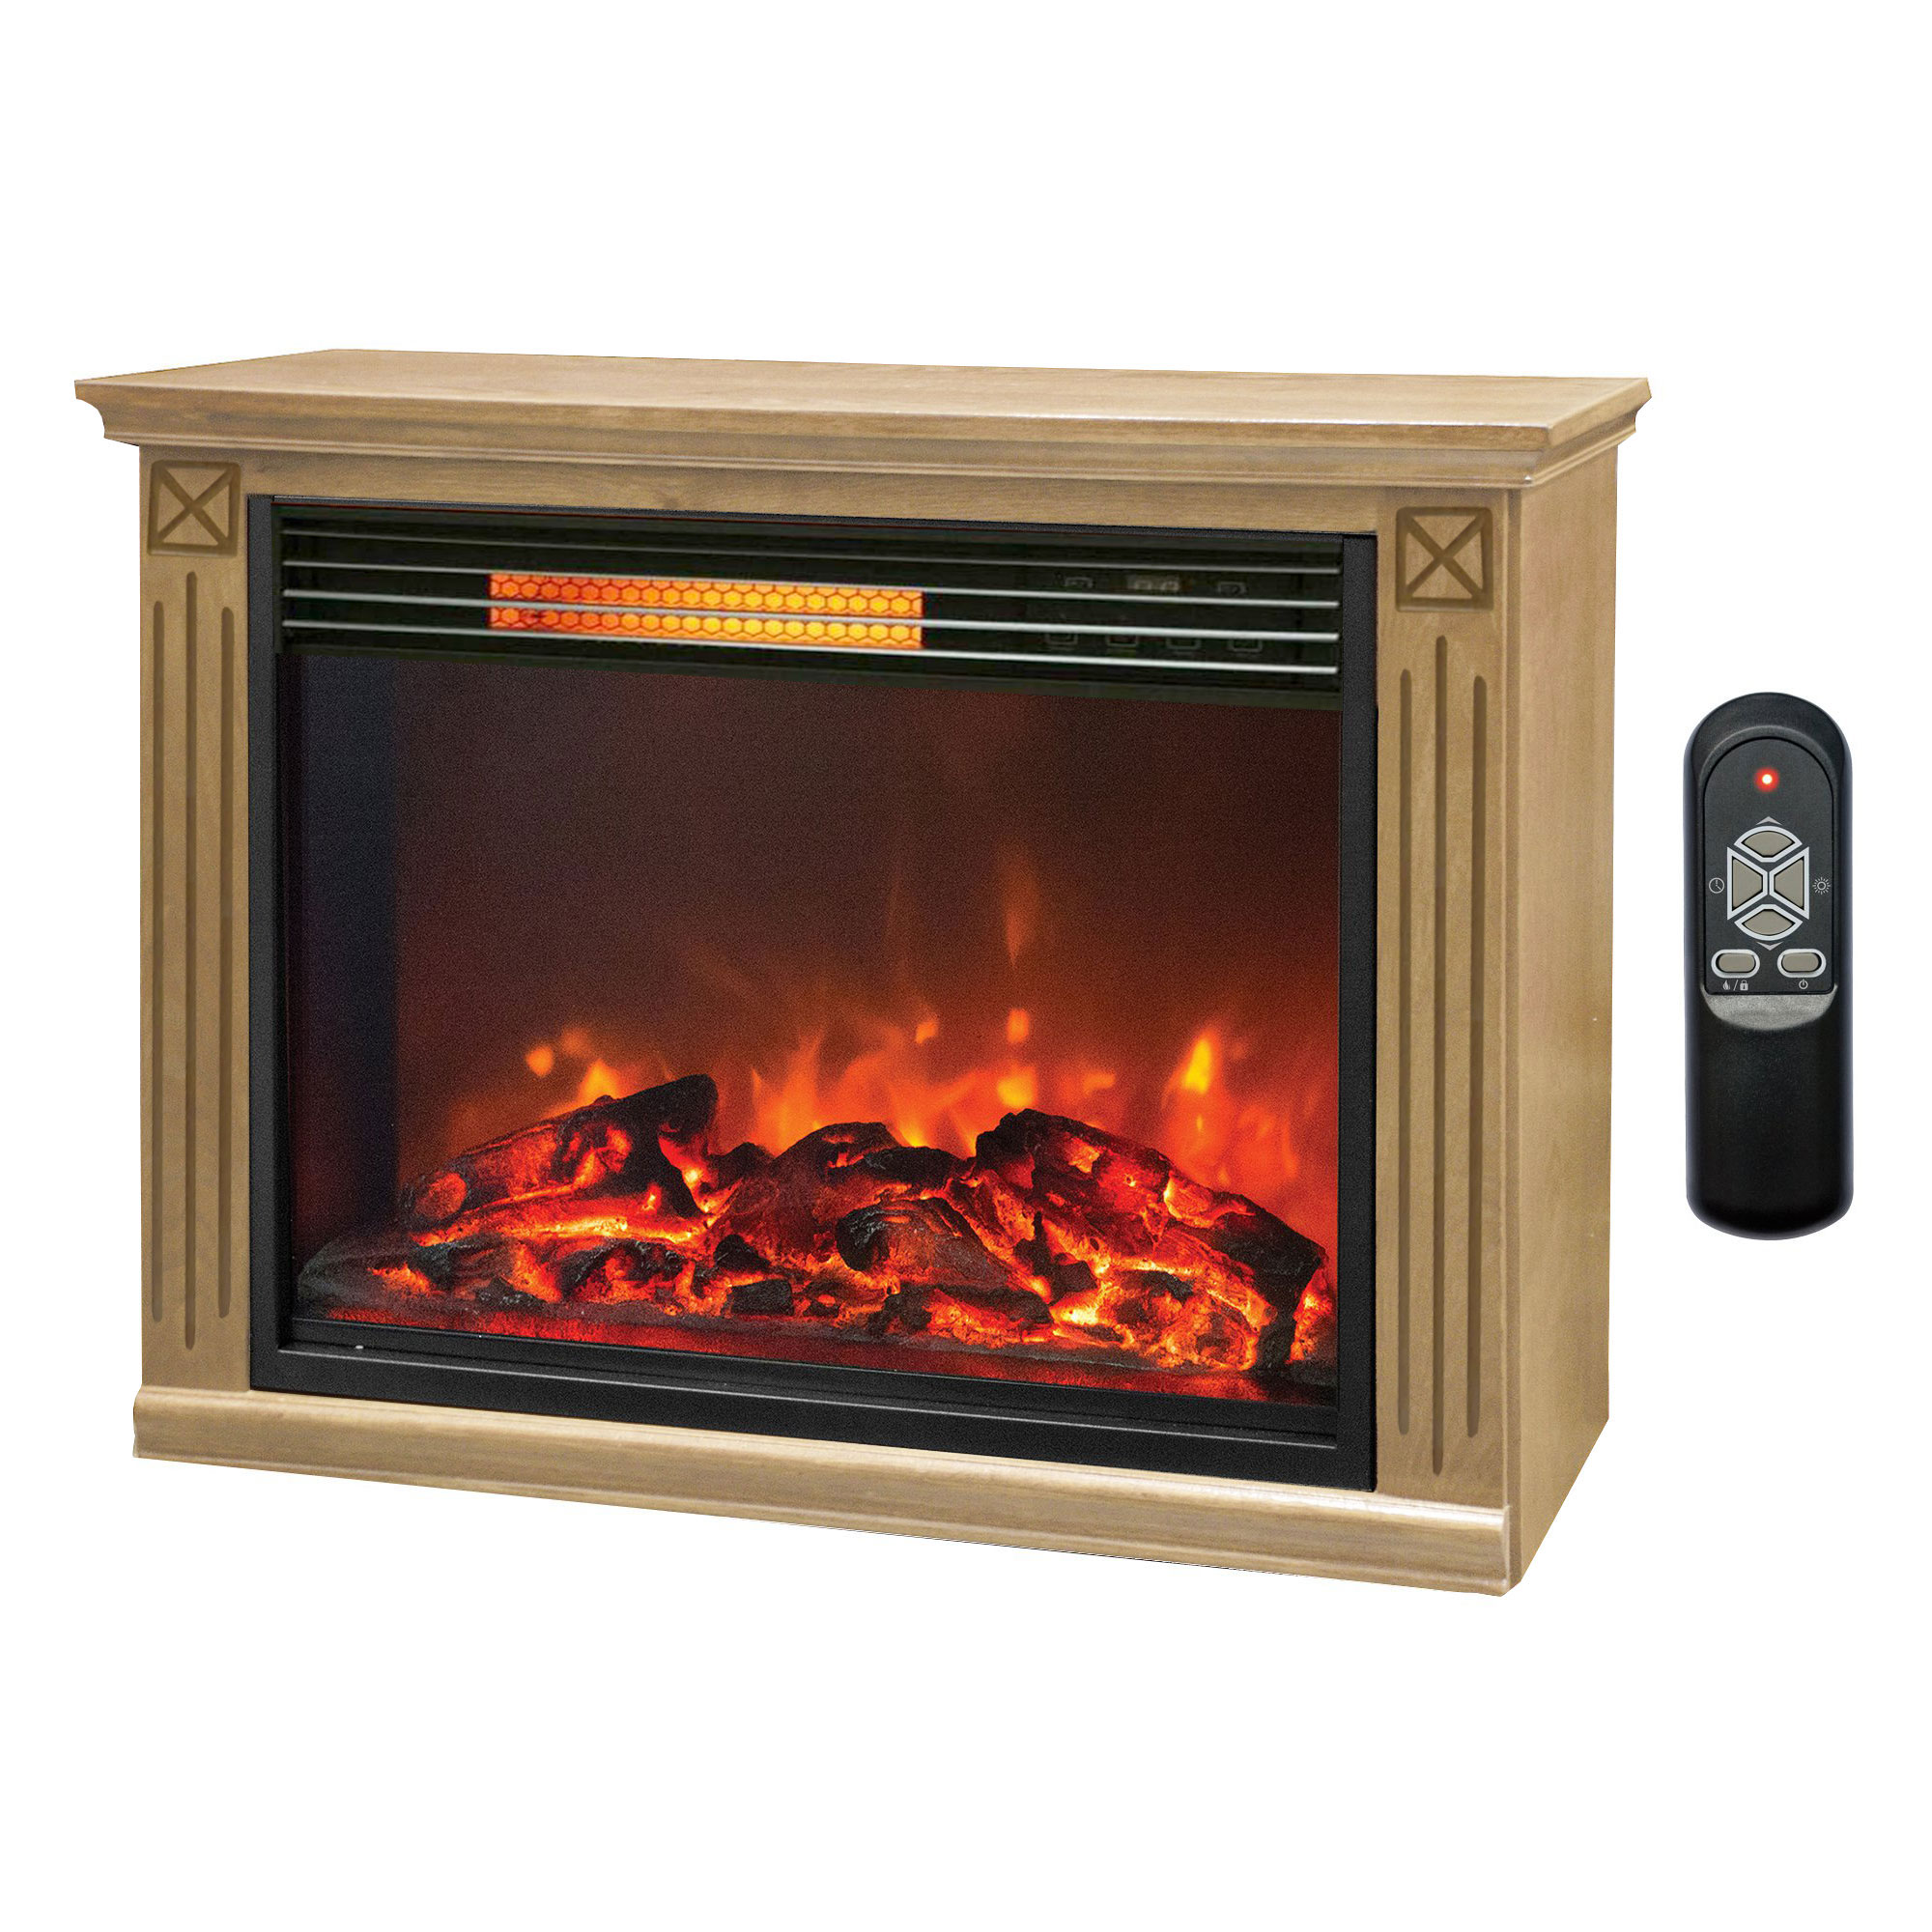 Lifesmart Big Room Electric Infrared Quartz Fireplace Hea...